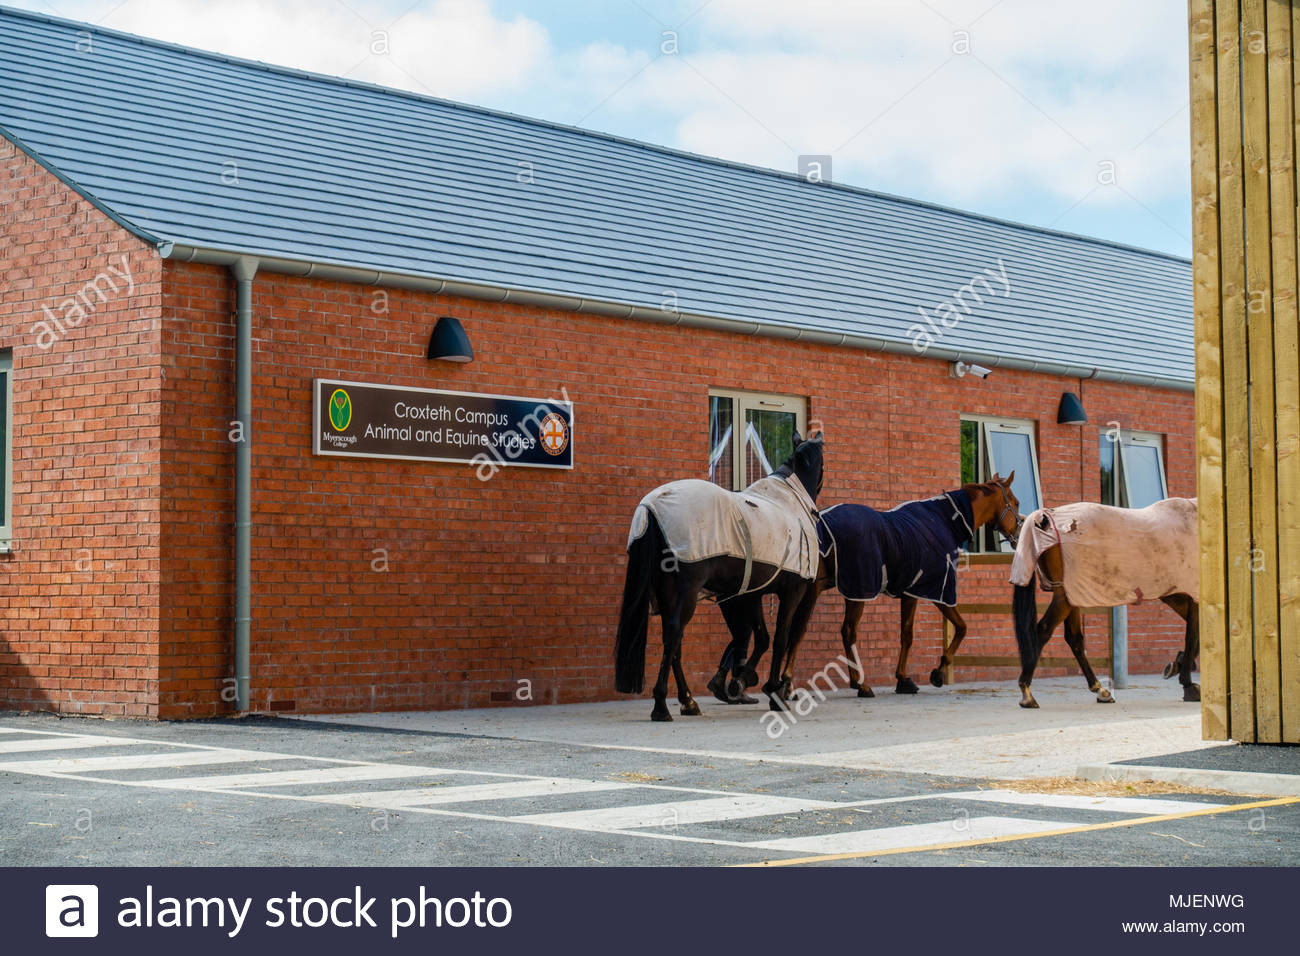 Myerscough College, the new multi million pound Croxteth Campus College Education hub, for Animal and Equine Studies, based at Croxteth Country Park, Merseyside, opens the new building for a student taster day, in order that school leavers can have a look at the new facilities, as staff return several horses to the stables. Croxteth Park, Liverpool England UK Stock Photo